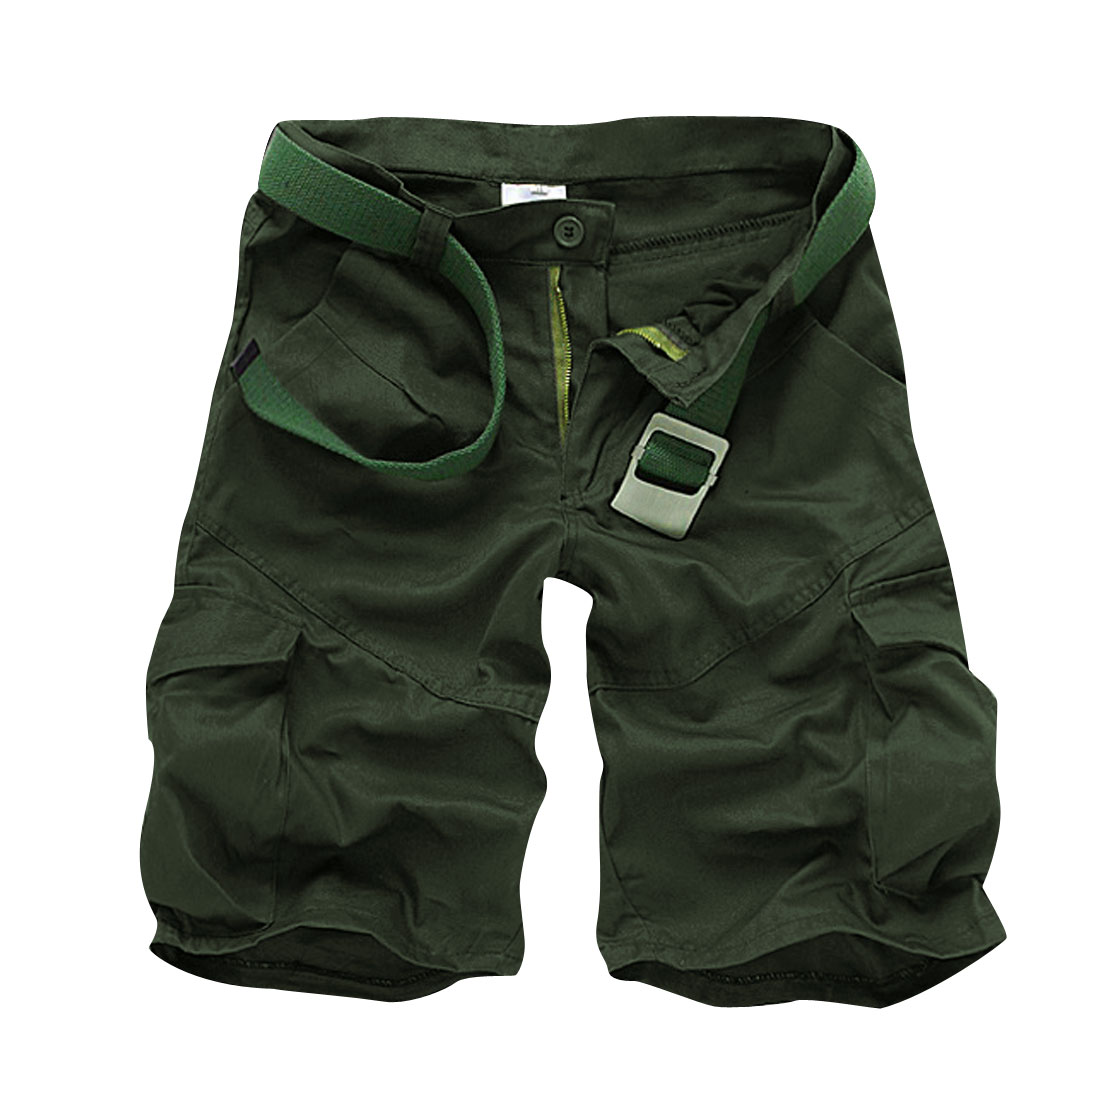 Men Zippered Fly Button Closure Hip Pockets Shorts Pants Olive Green W32